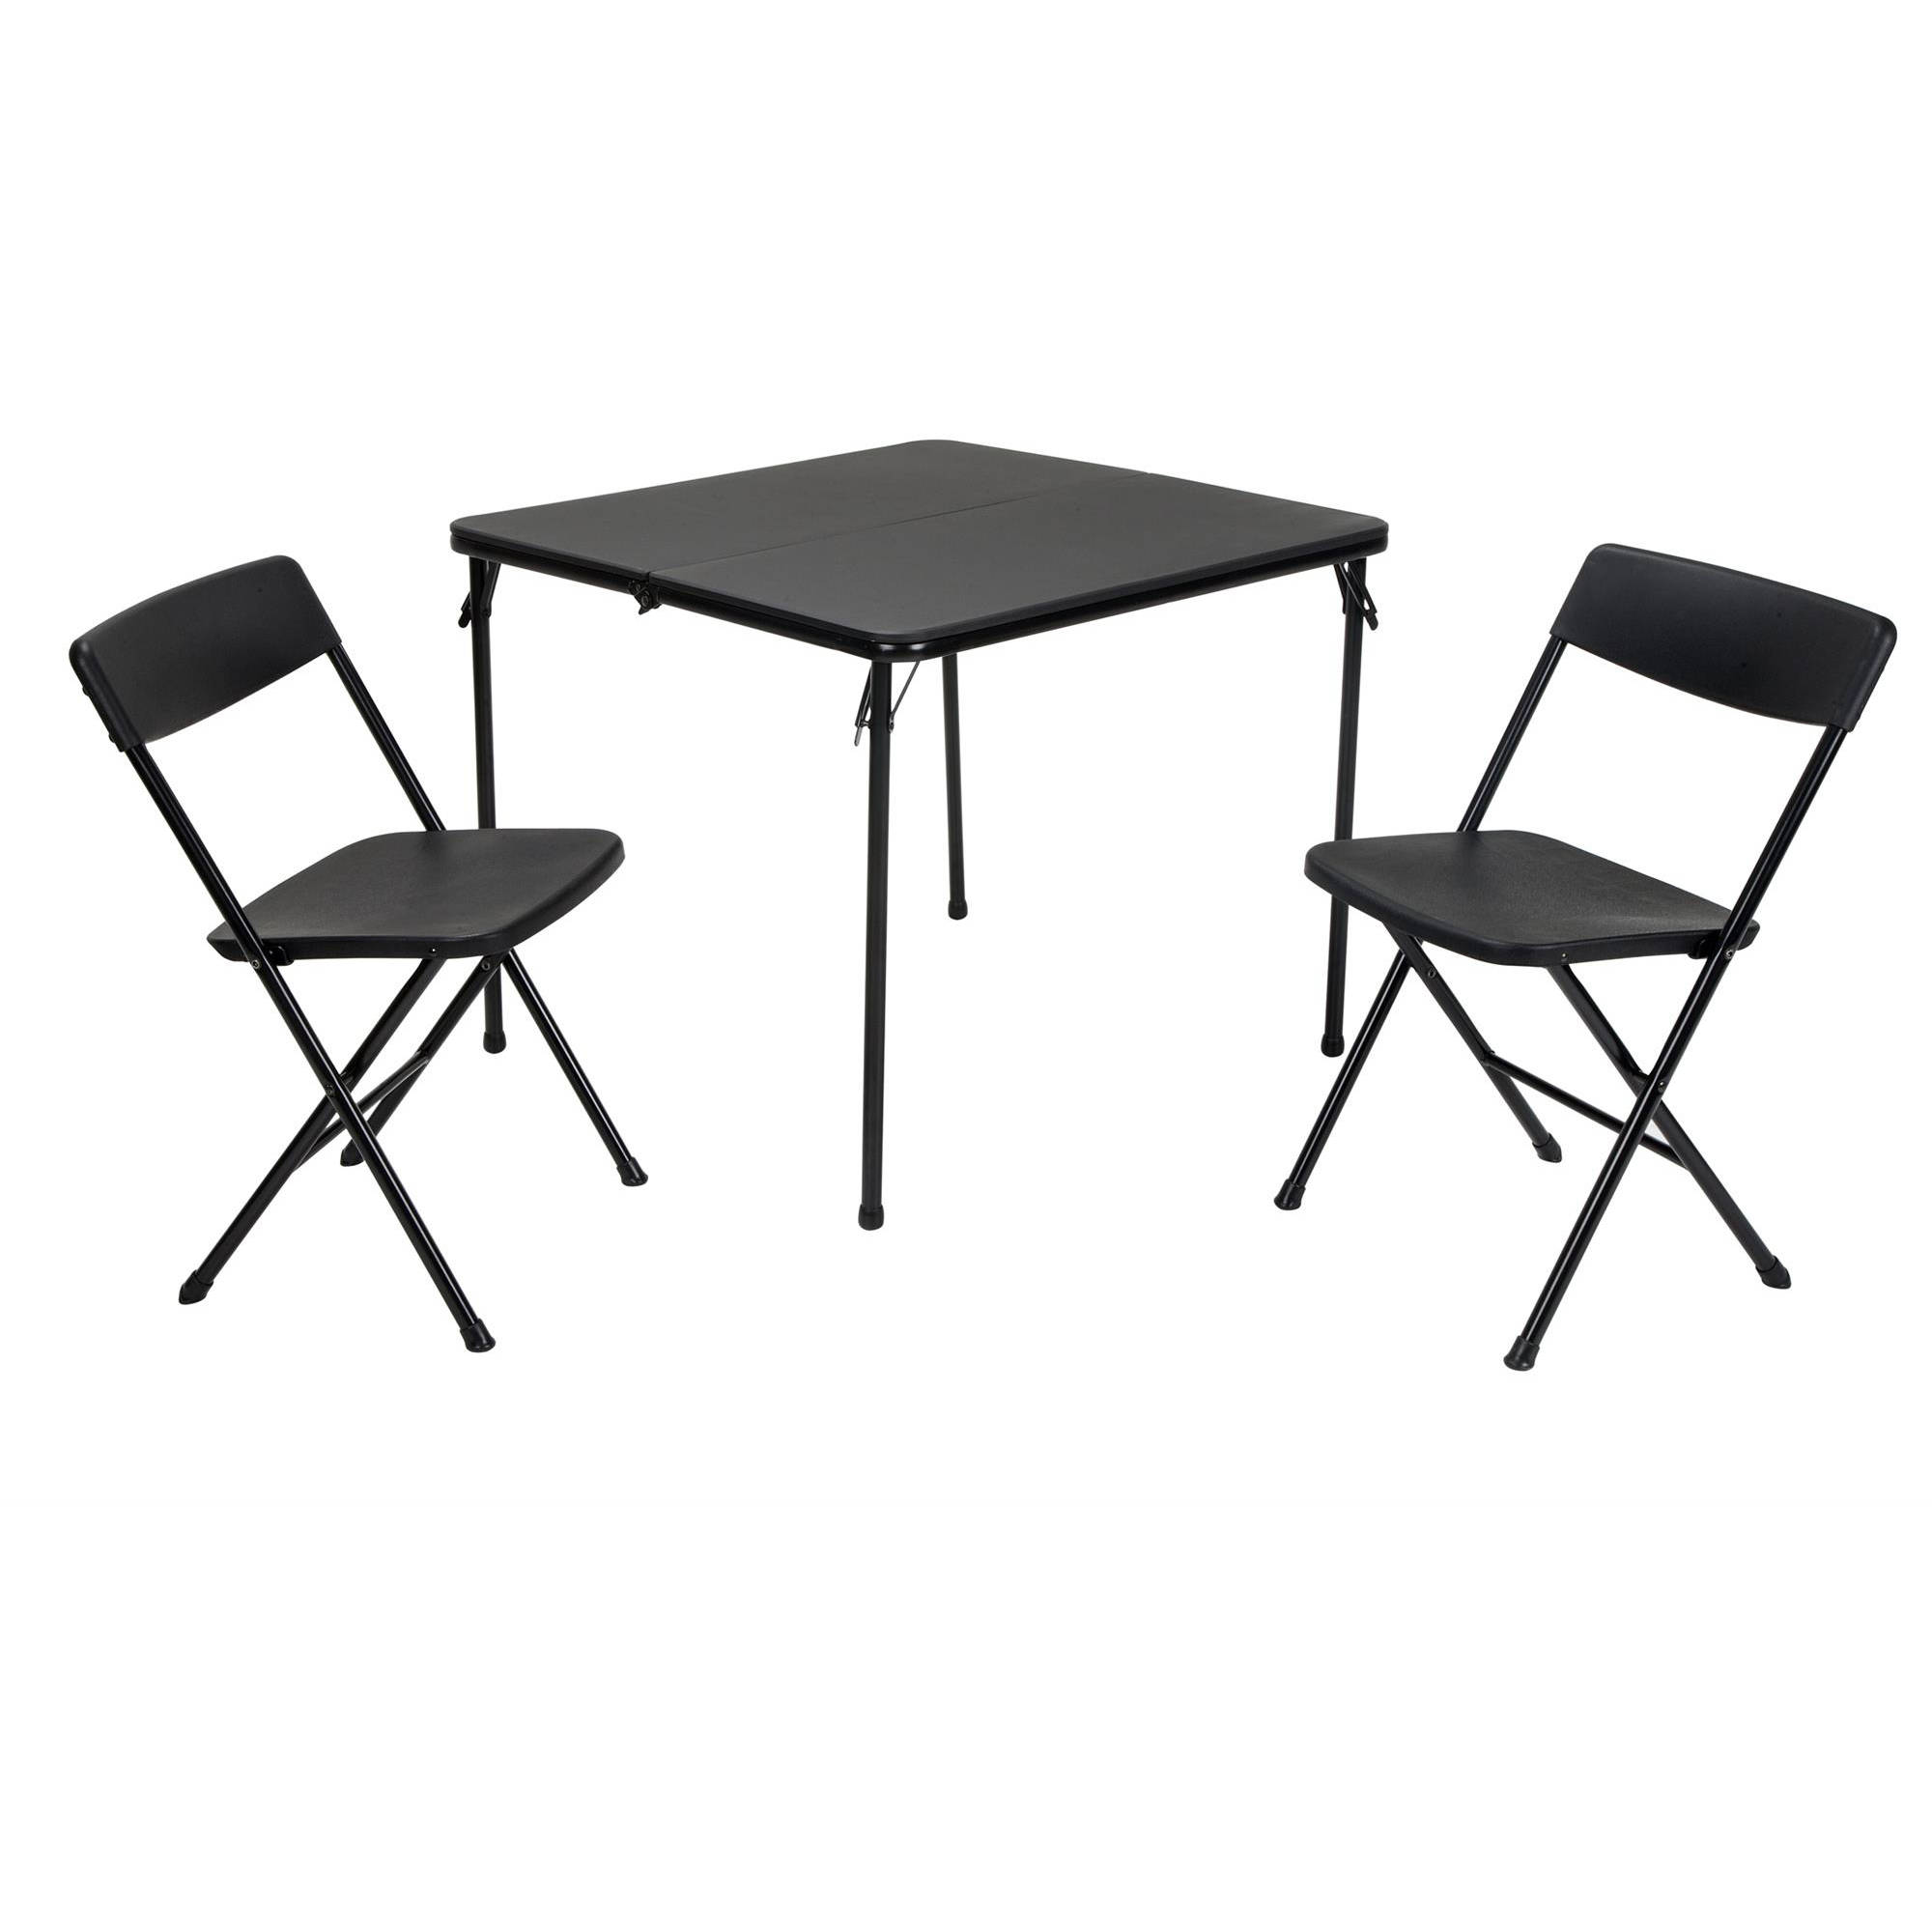 Cosco 3-Piece Centerfold Table and 2 Chairs, Indoor/Outdoor Tailgate Set, Multiple Colors